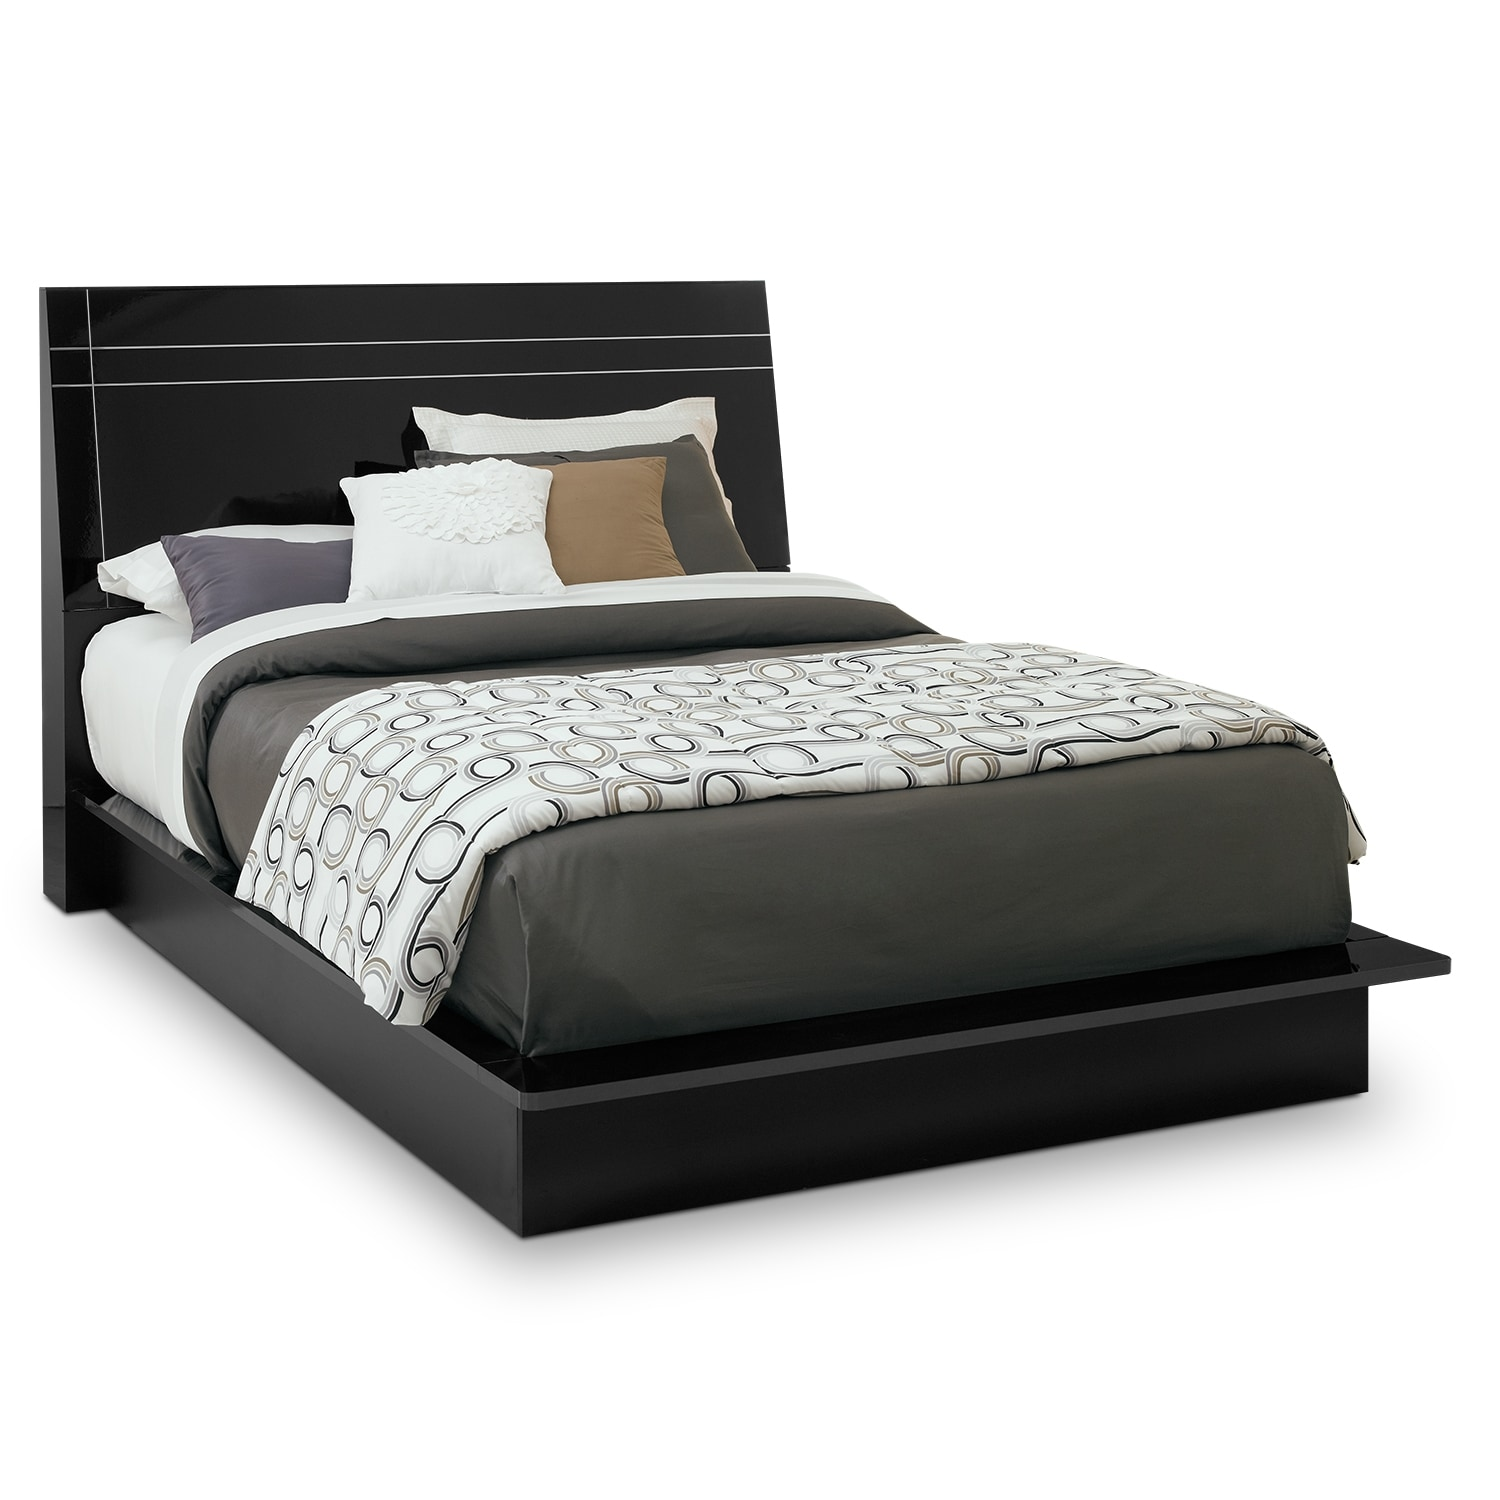 Dimora queen panel bed black value city furniture Black bunk beds